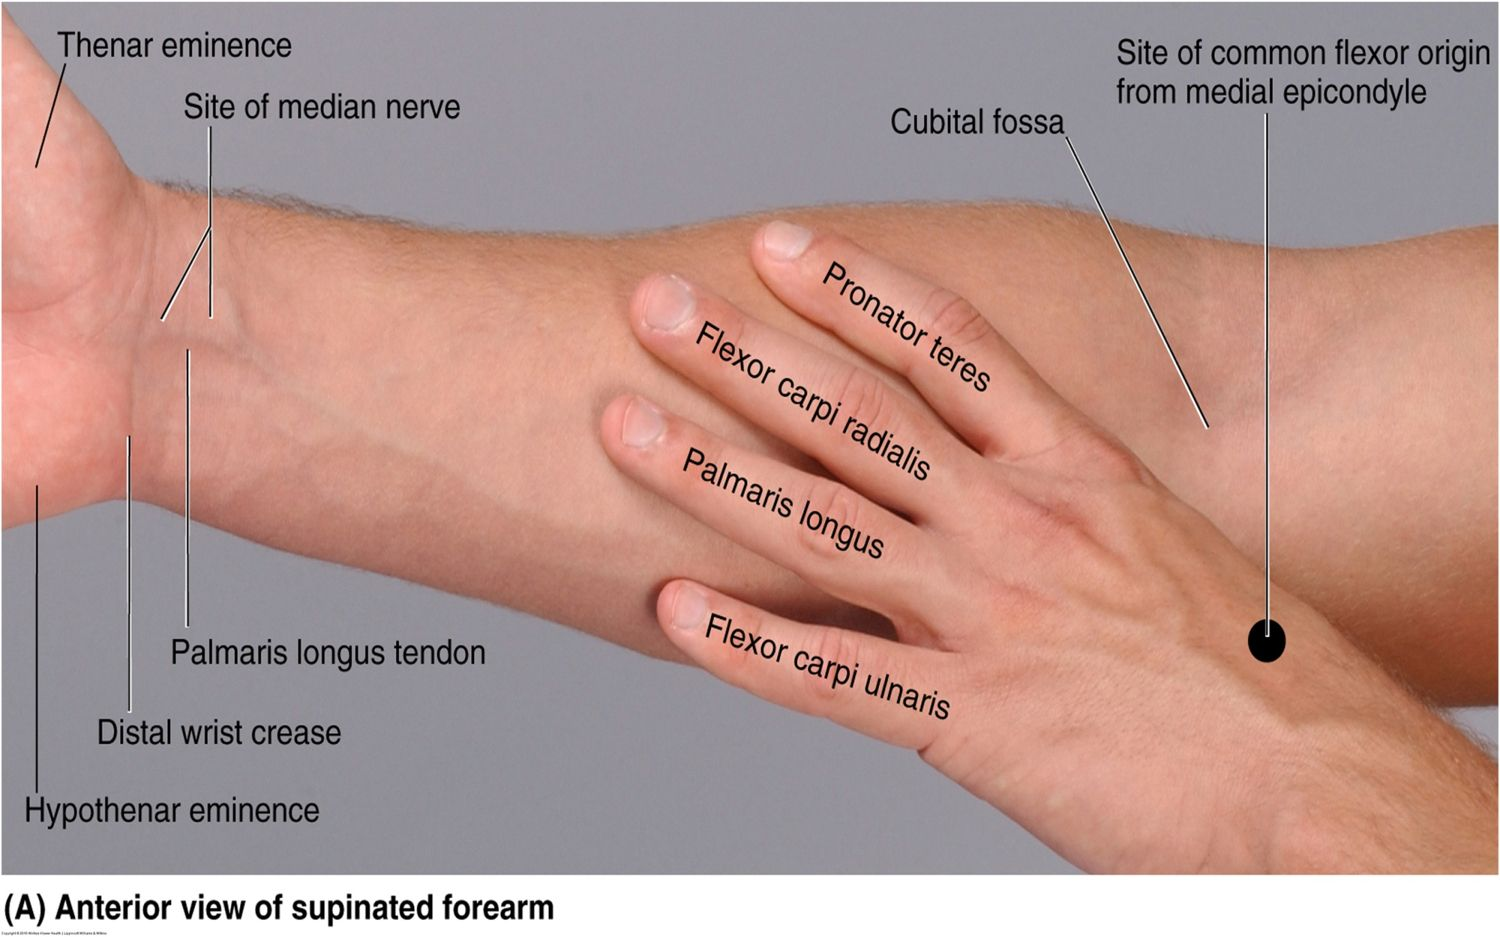 Mnemonics For Muscles Of Forearm Forearm Muscle Mnemonics - Anatomy ...